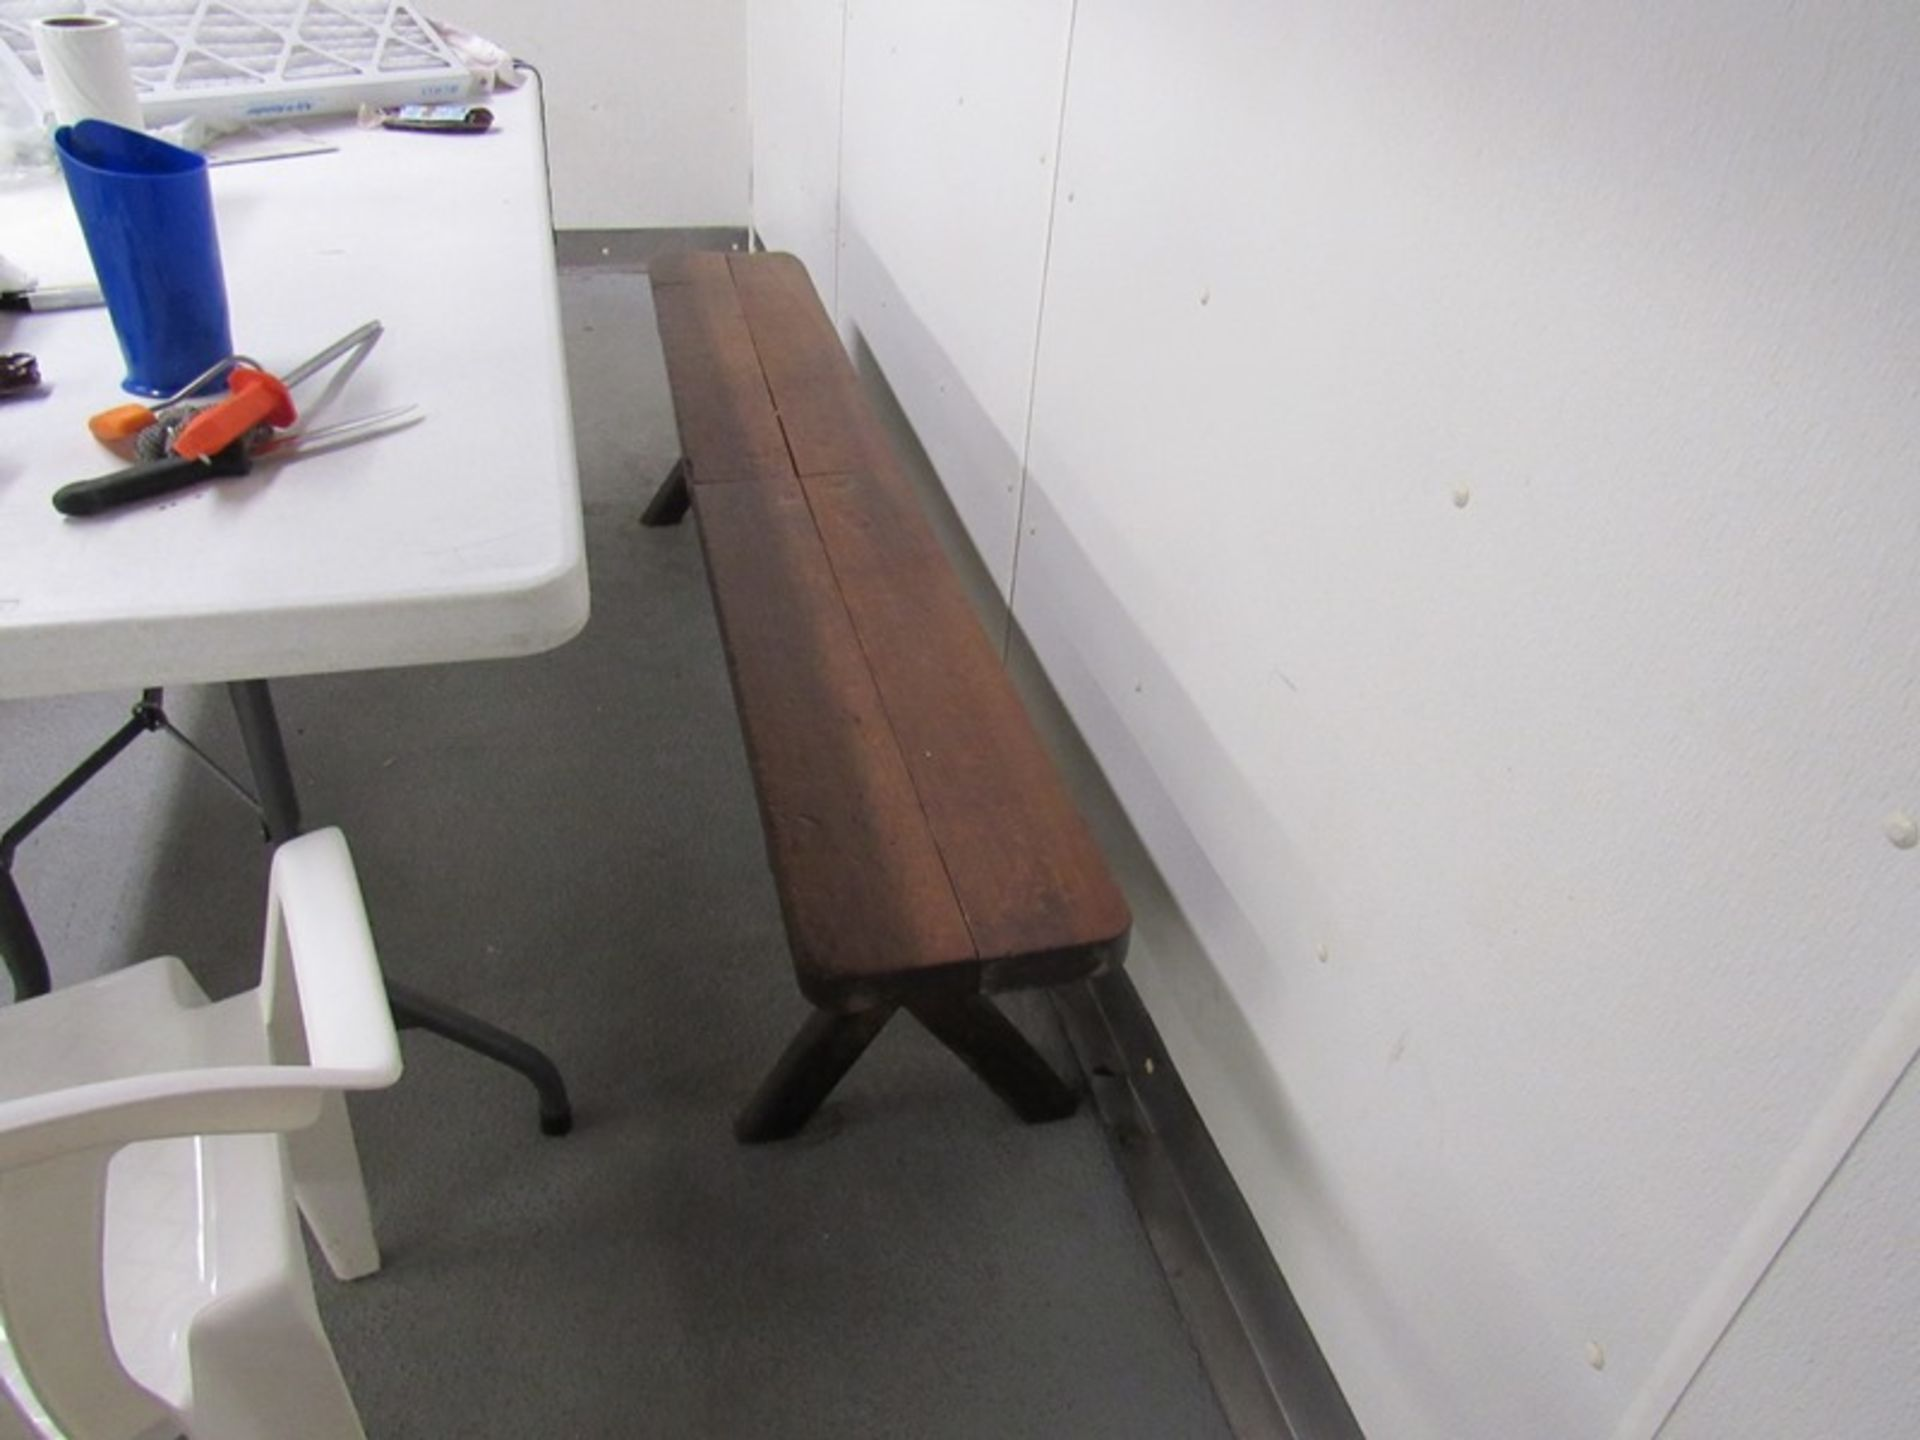 Lot 174 - Lot of Offices in Plant/Cafeteria, (2) Desks, Table, (3) Chairs, (2) Plastic Tables, 6' 8', (2) Plas